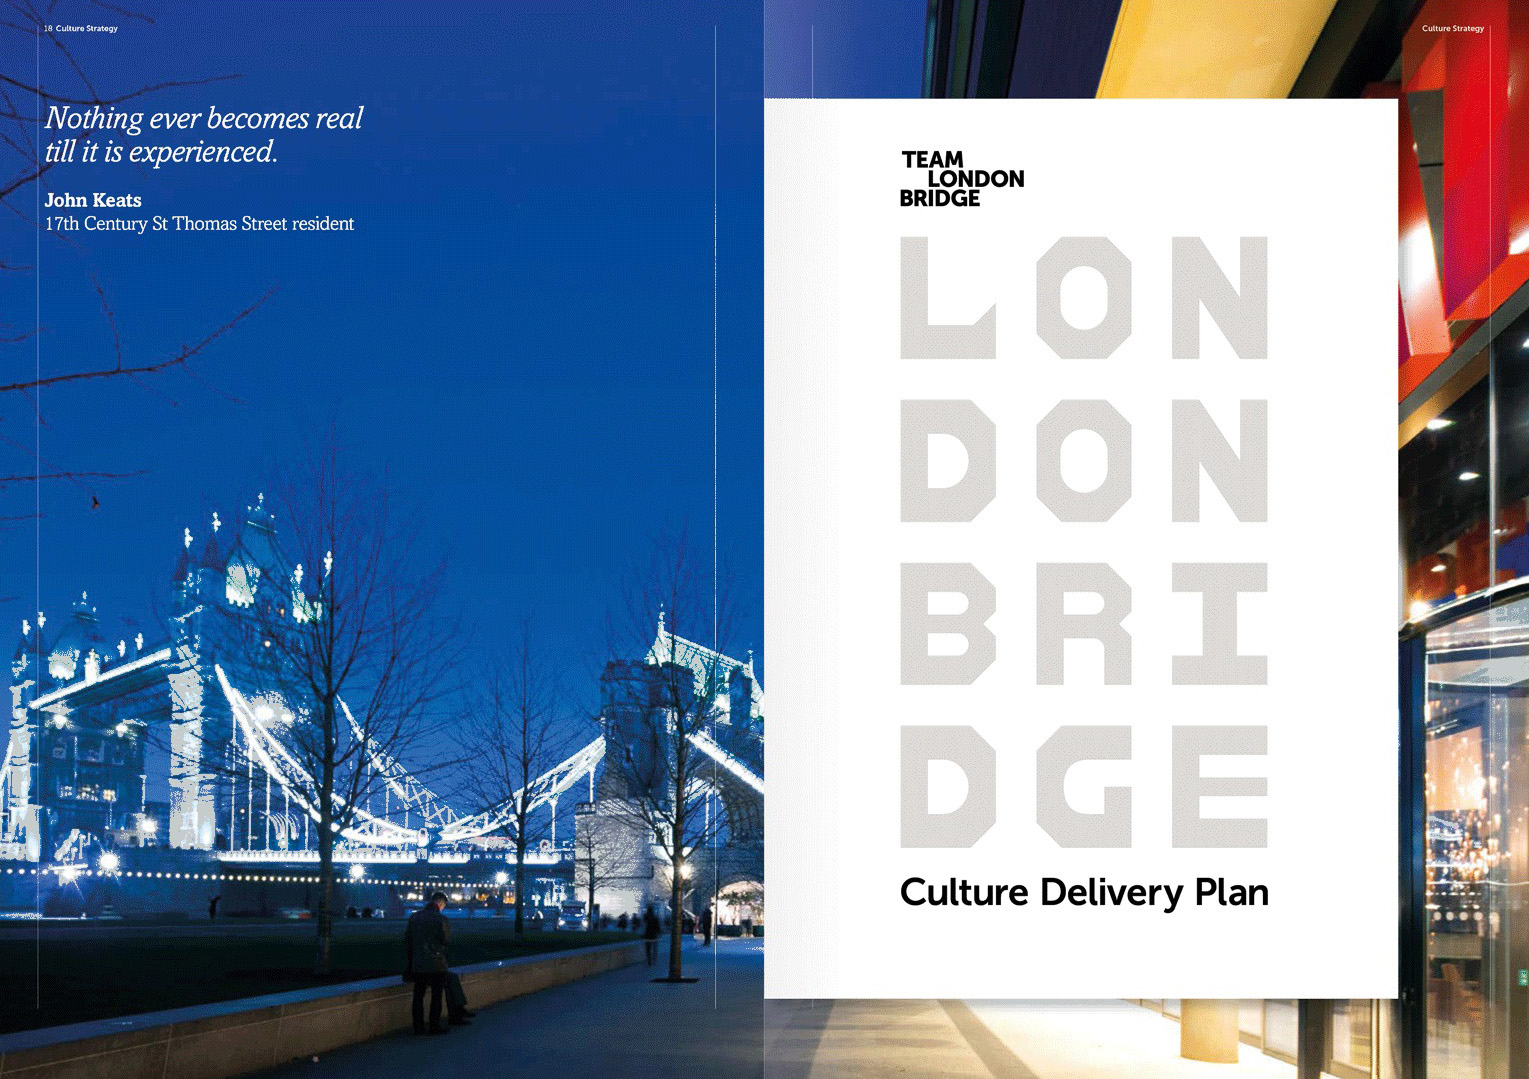 The Culture Delivery Plan, nested within the document.